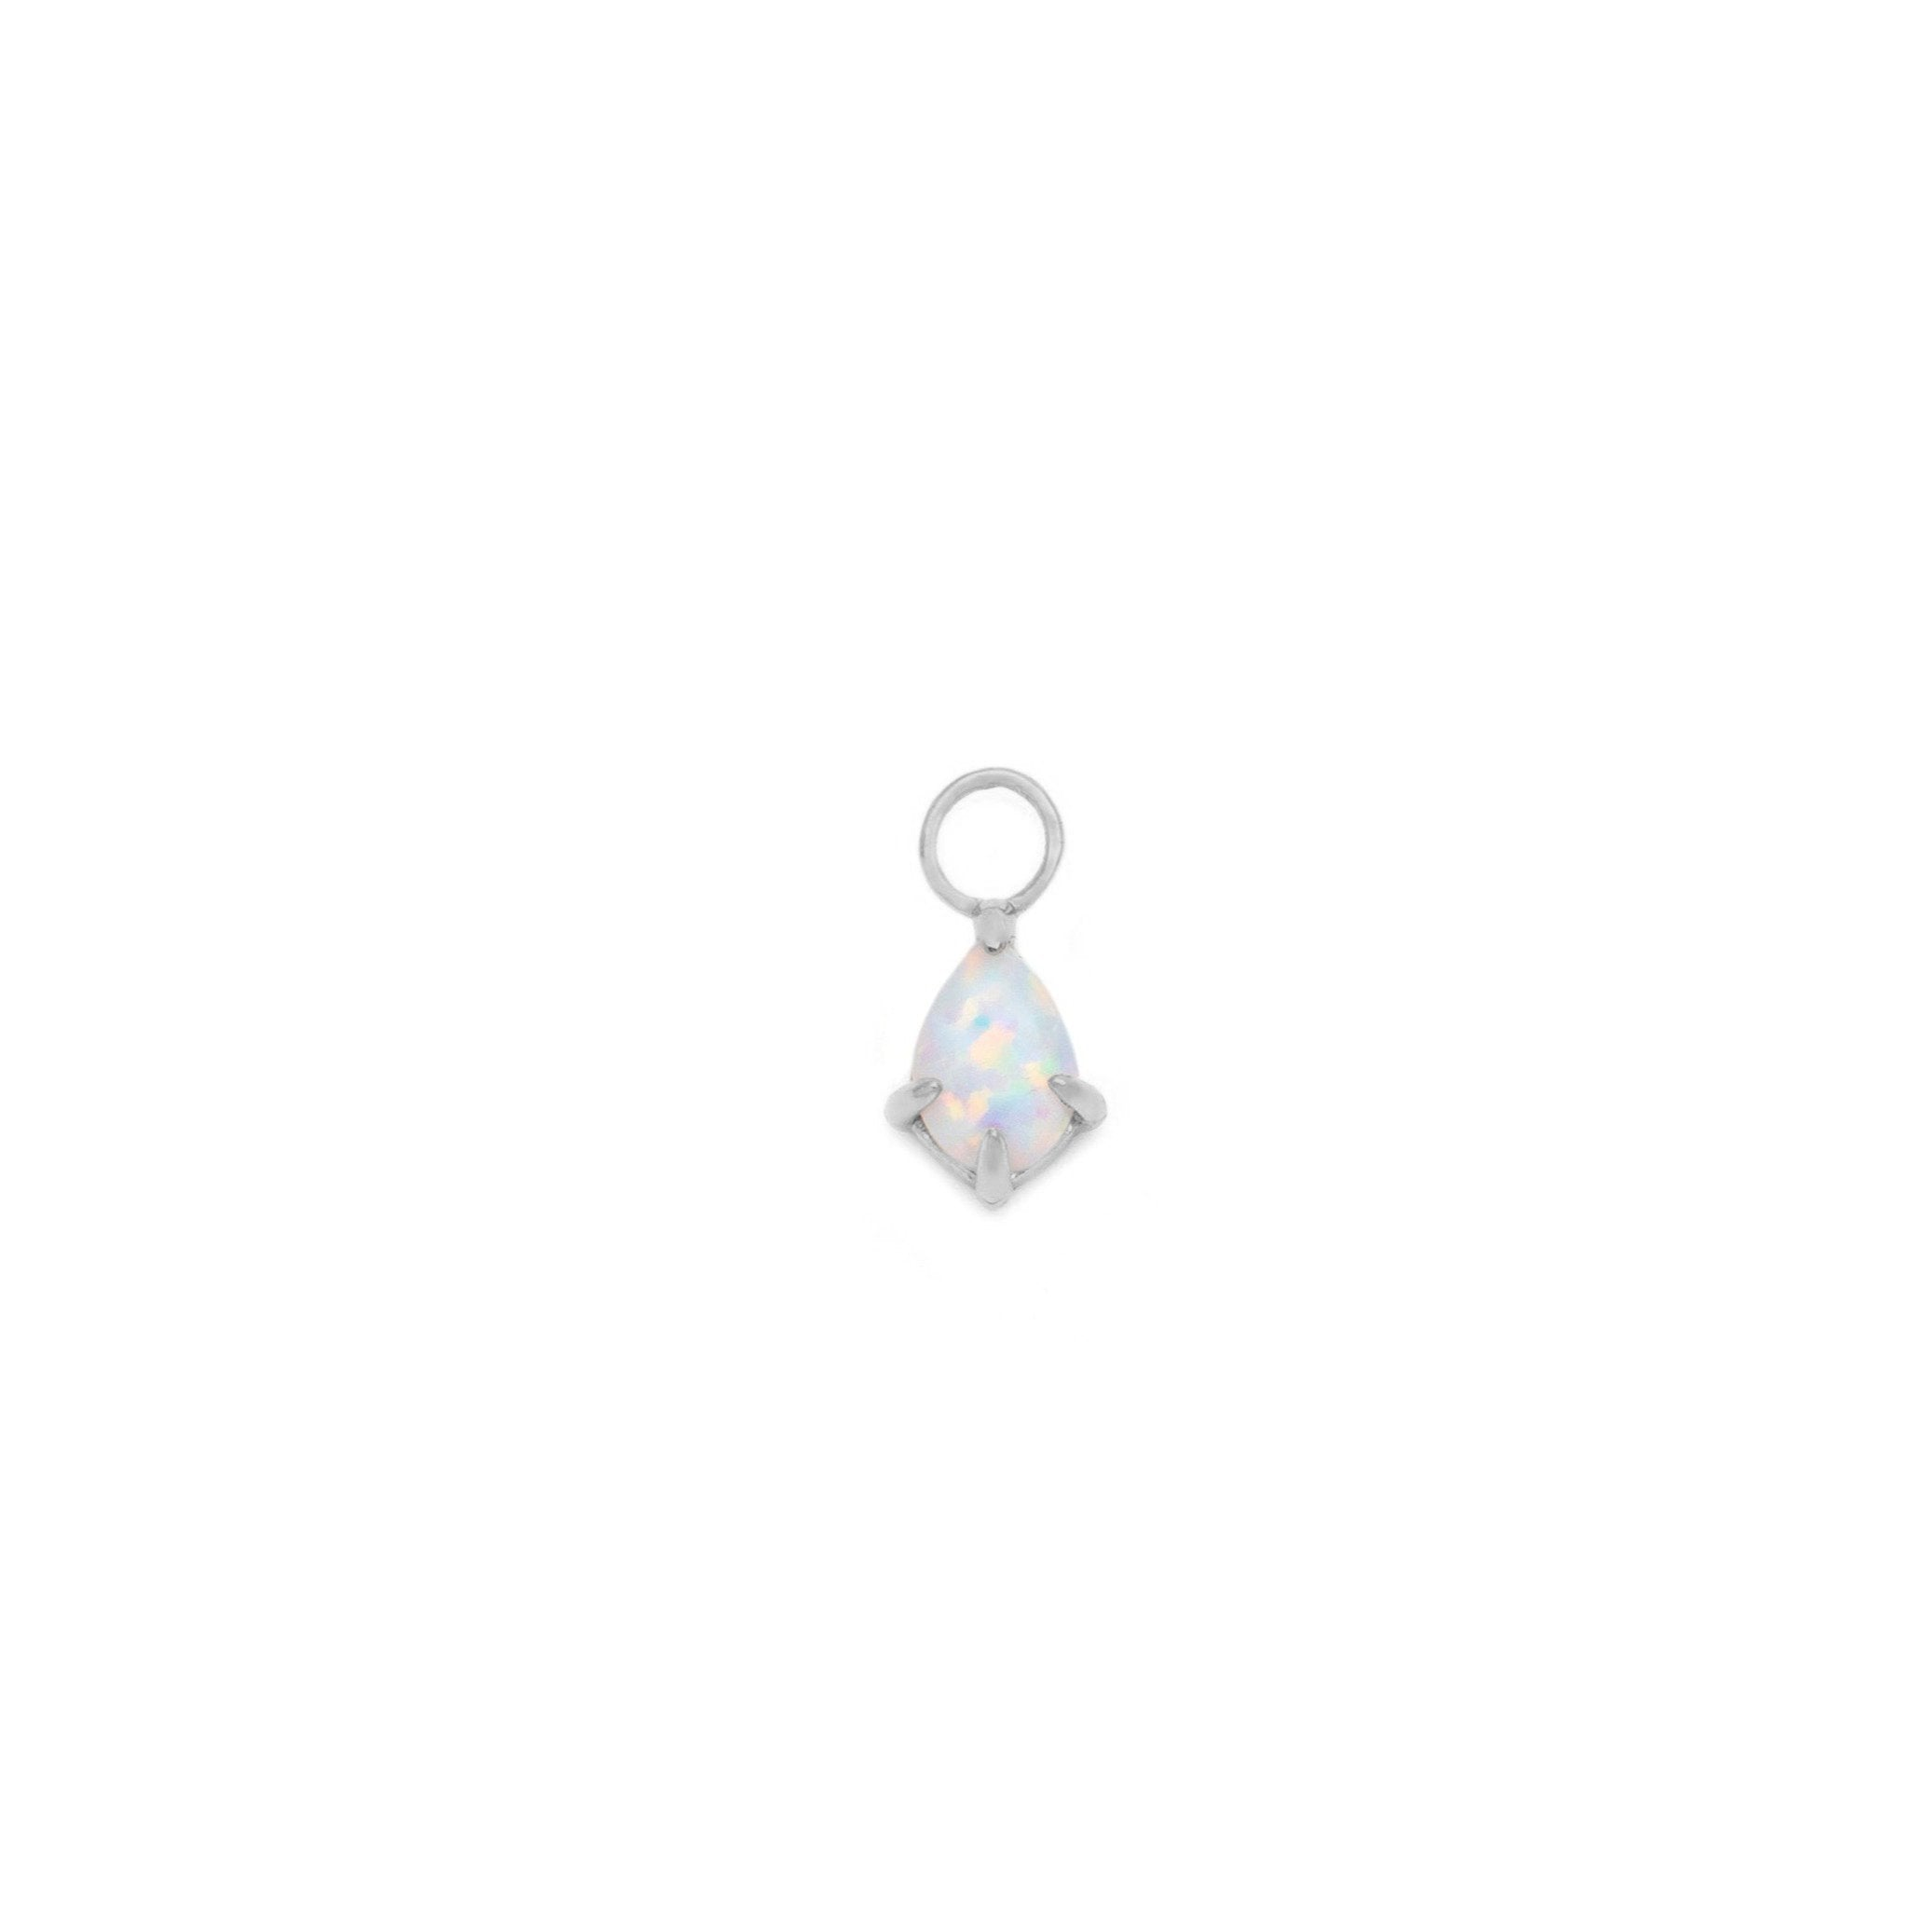 Single Opal Teardrop Earring Charm - Sterling Silver